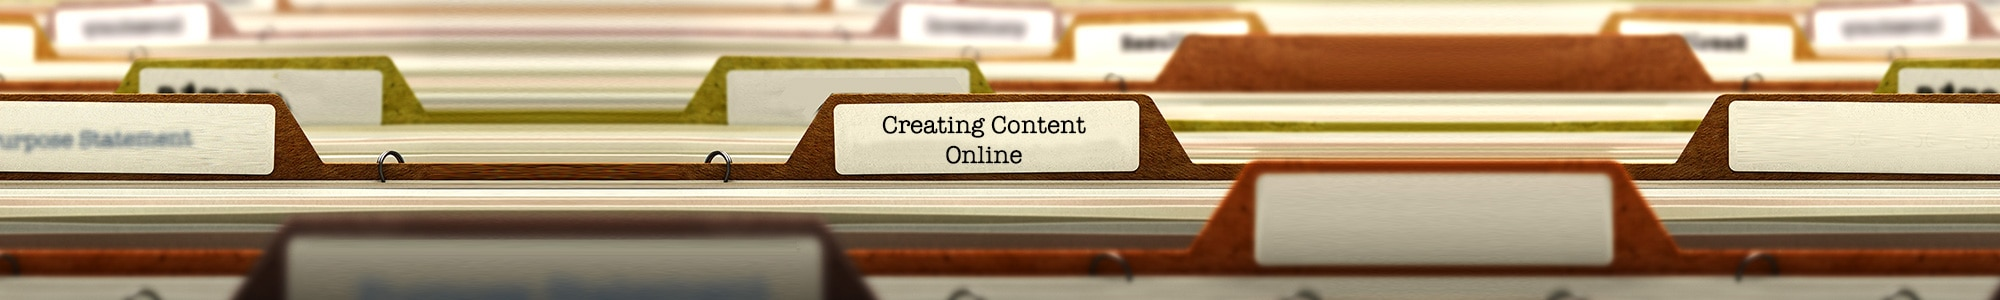 Creating content online